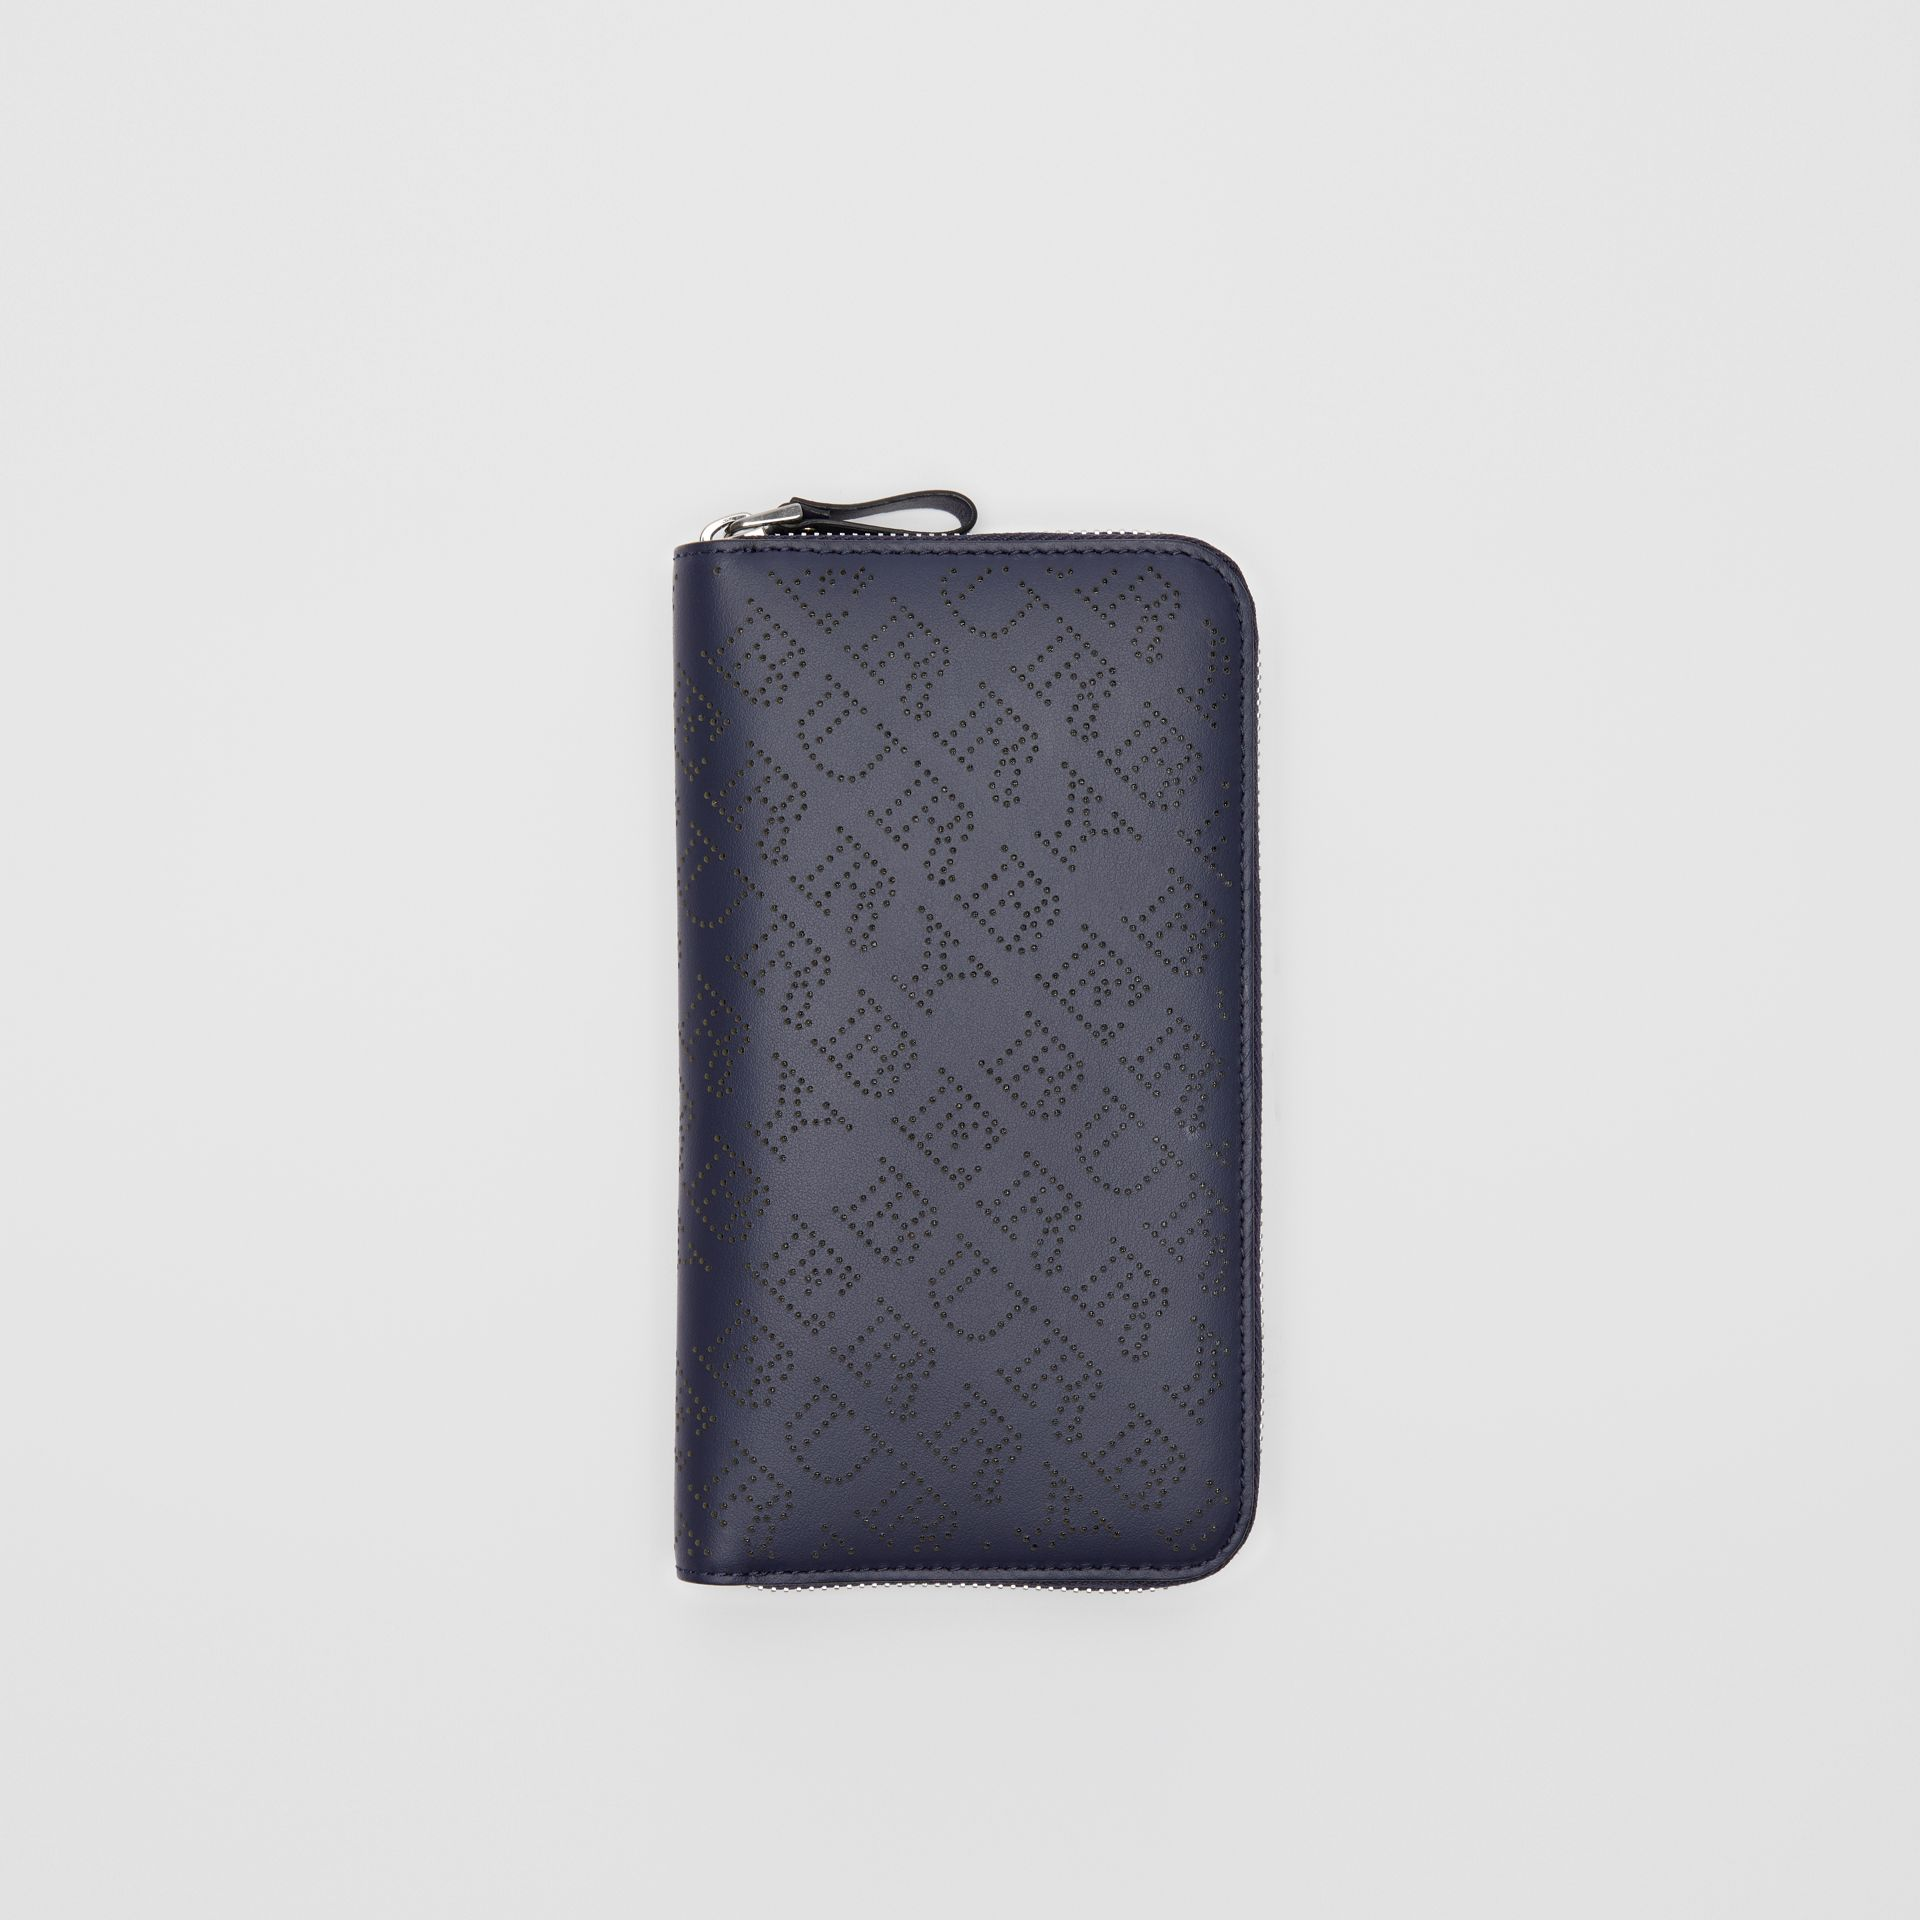 Perforated Leather Ziparound Wallet in Navy - Women | Burberry United Kingdom - gallery image 0